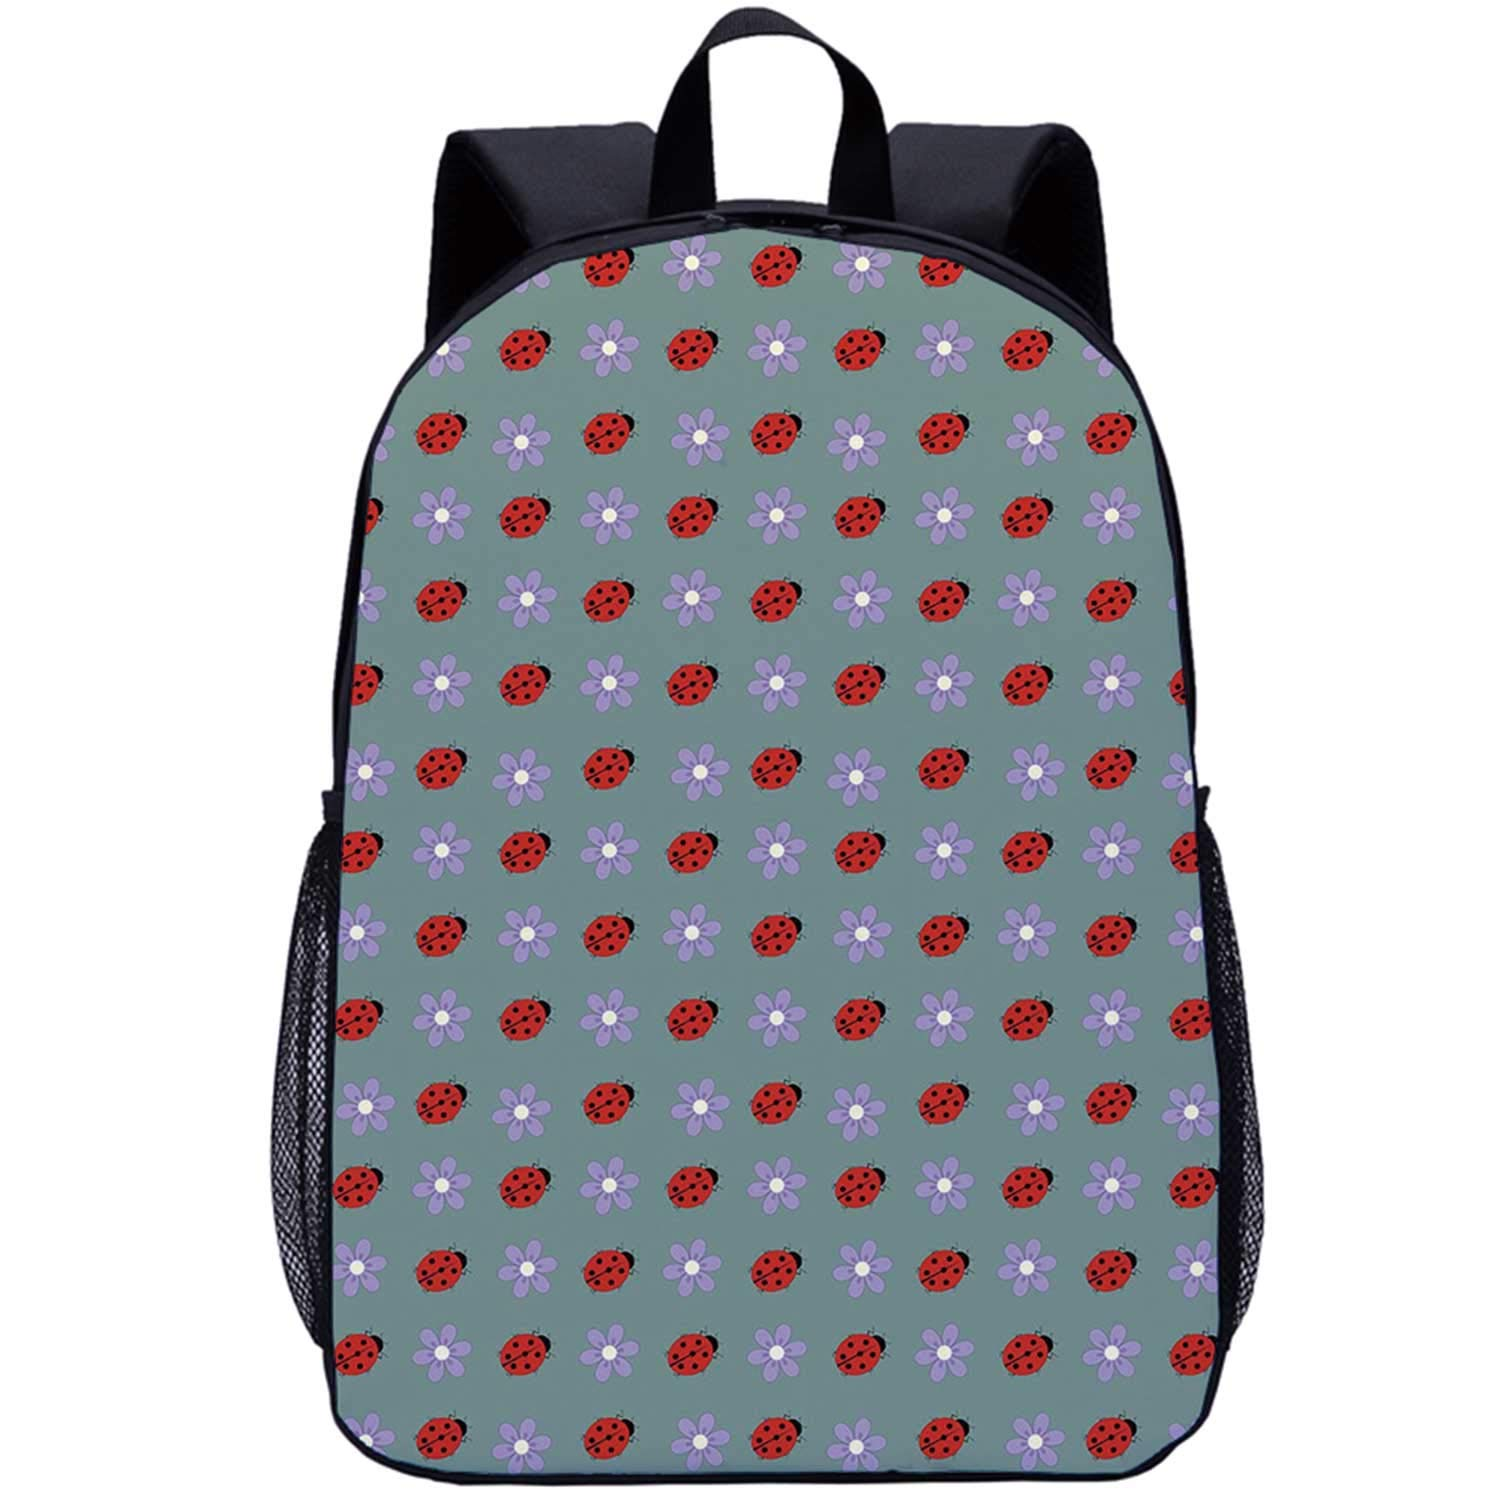 Ladybugs Multi Function Backpack,Bugs and Flower Pattern Flora and Fauna Design Diagonal Lilacs and Beetle Ornament for School,One_Size